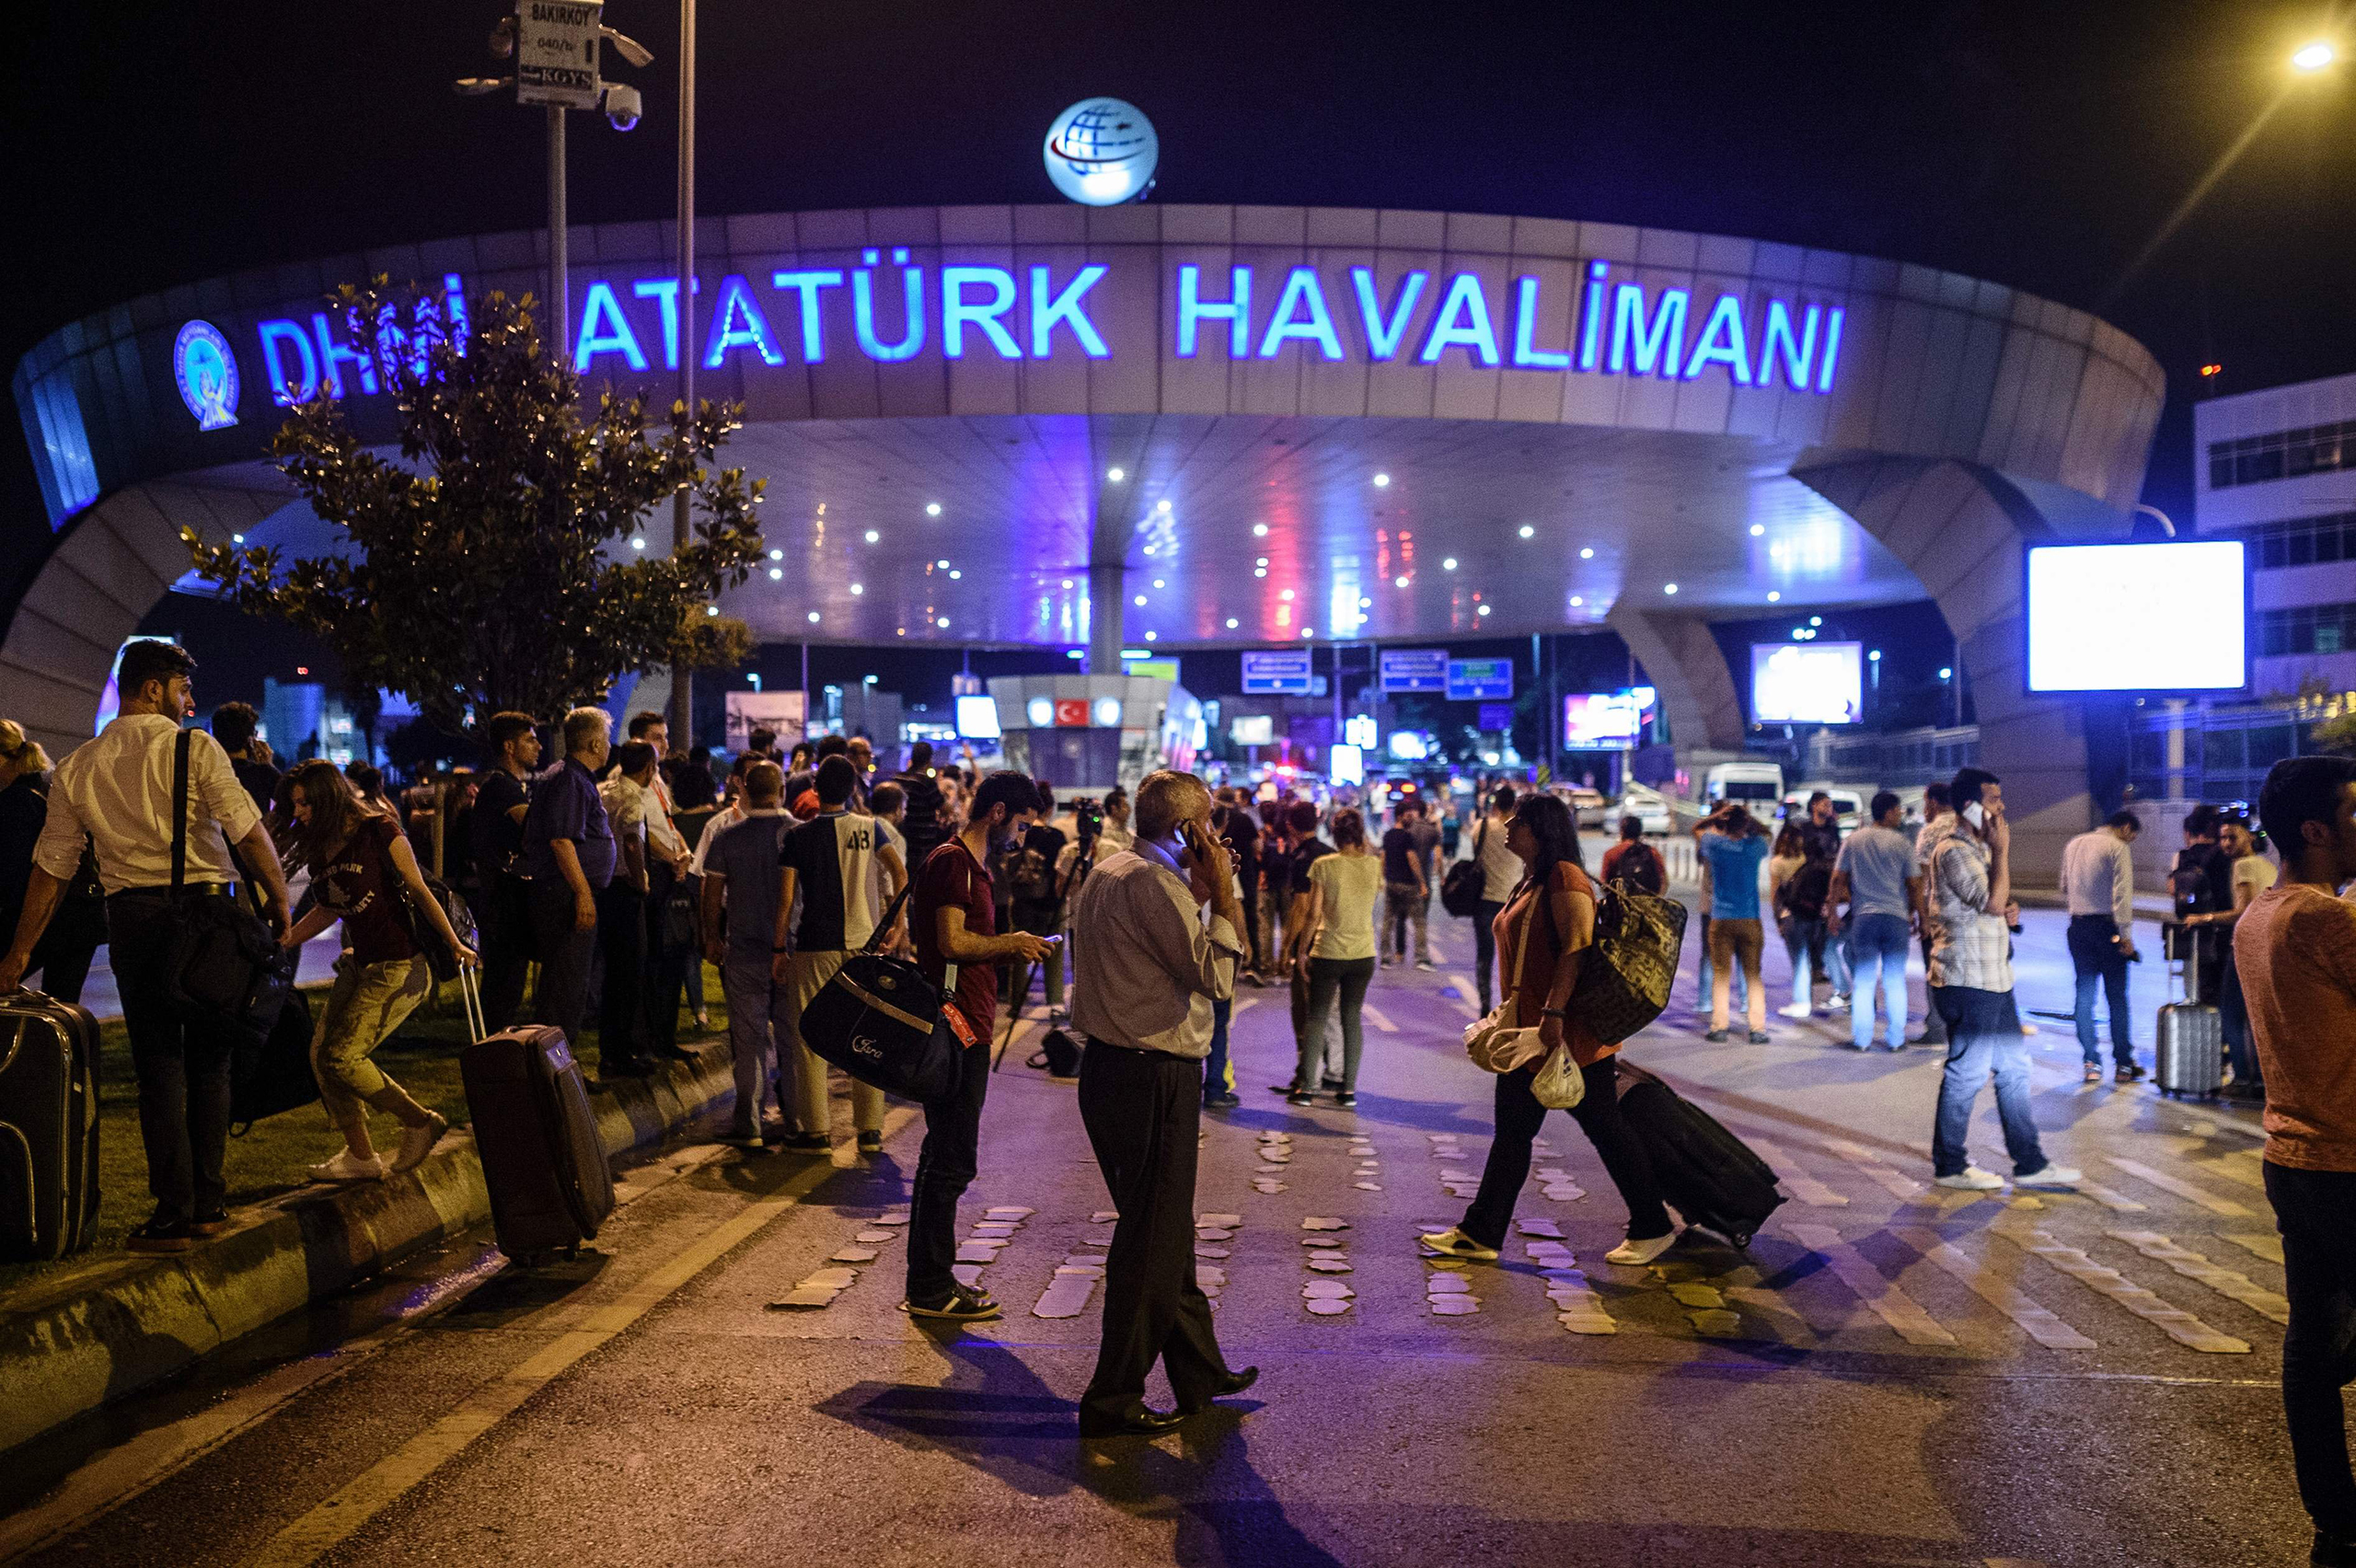 People stand outside the entrance as they leave Istanbul's Ataturk airport after at least two explosions on June 28, 2016.